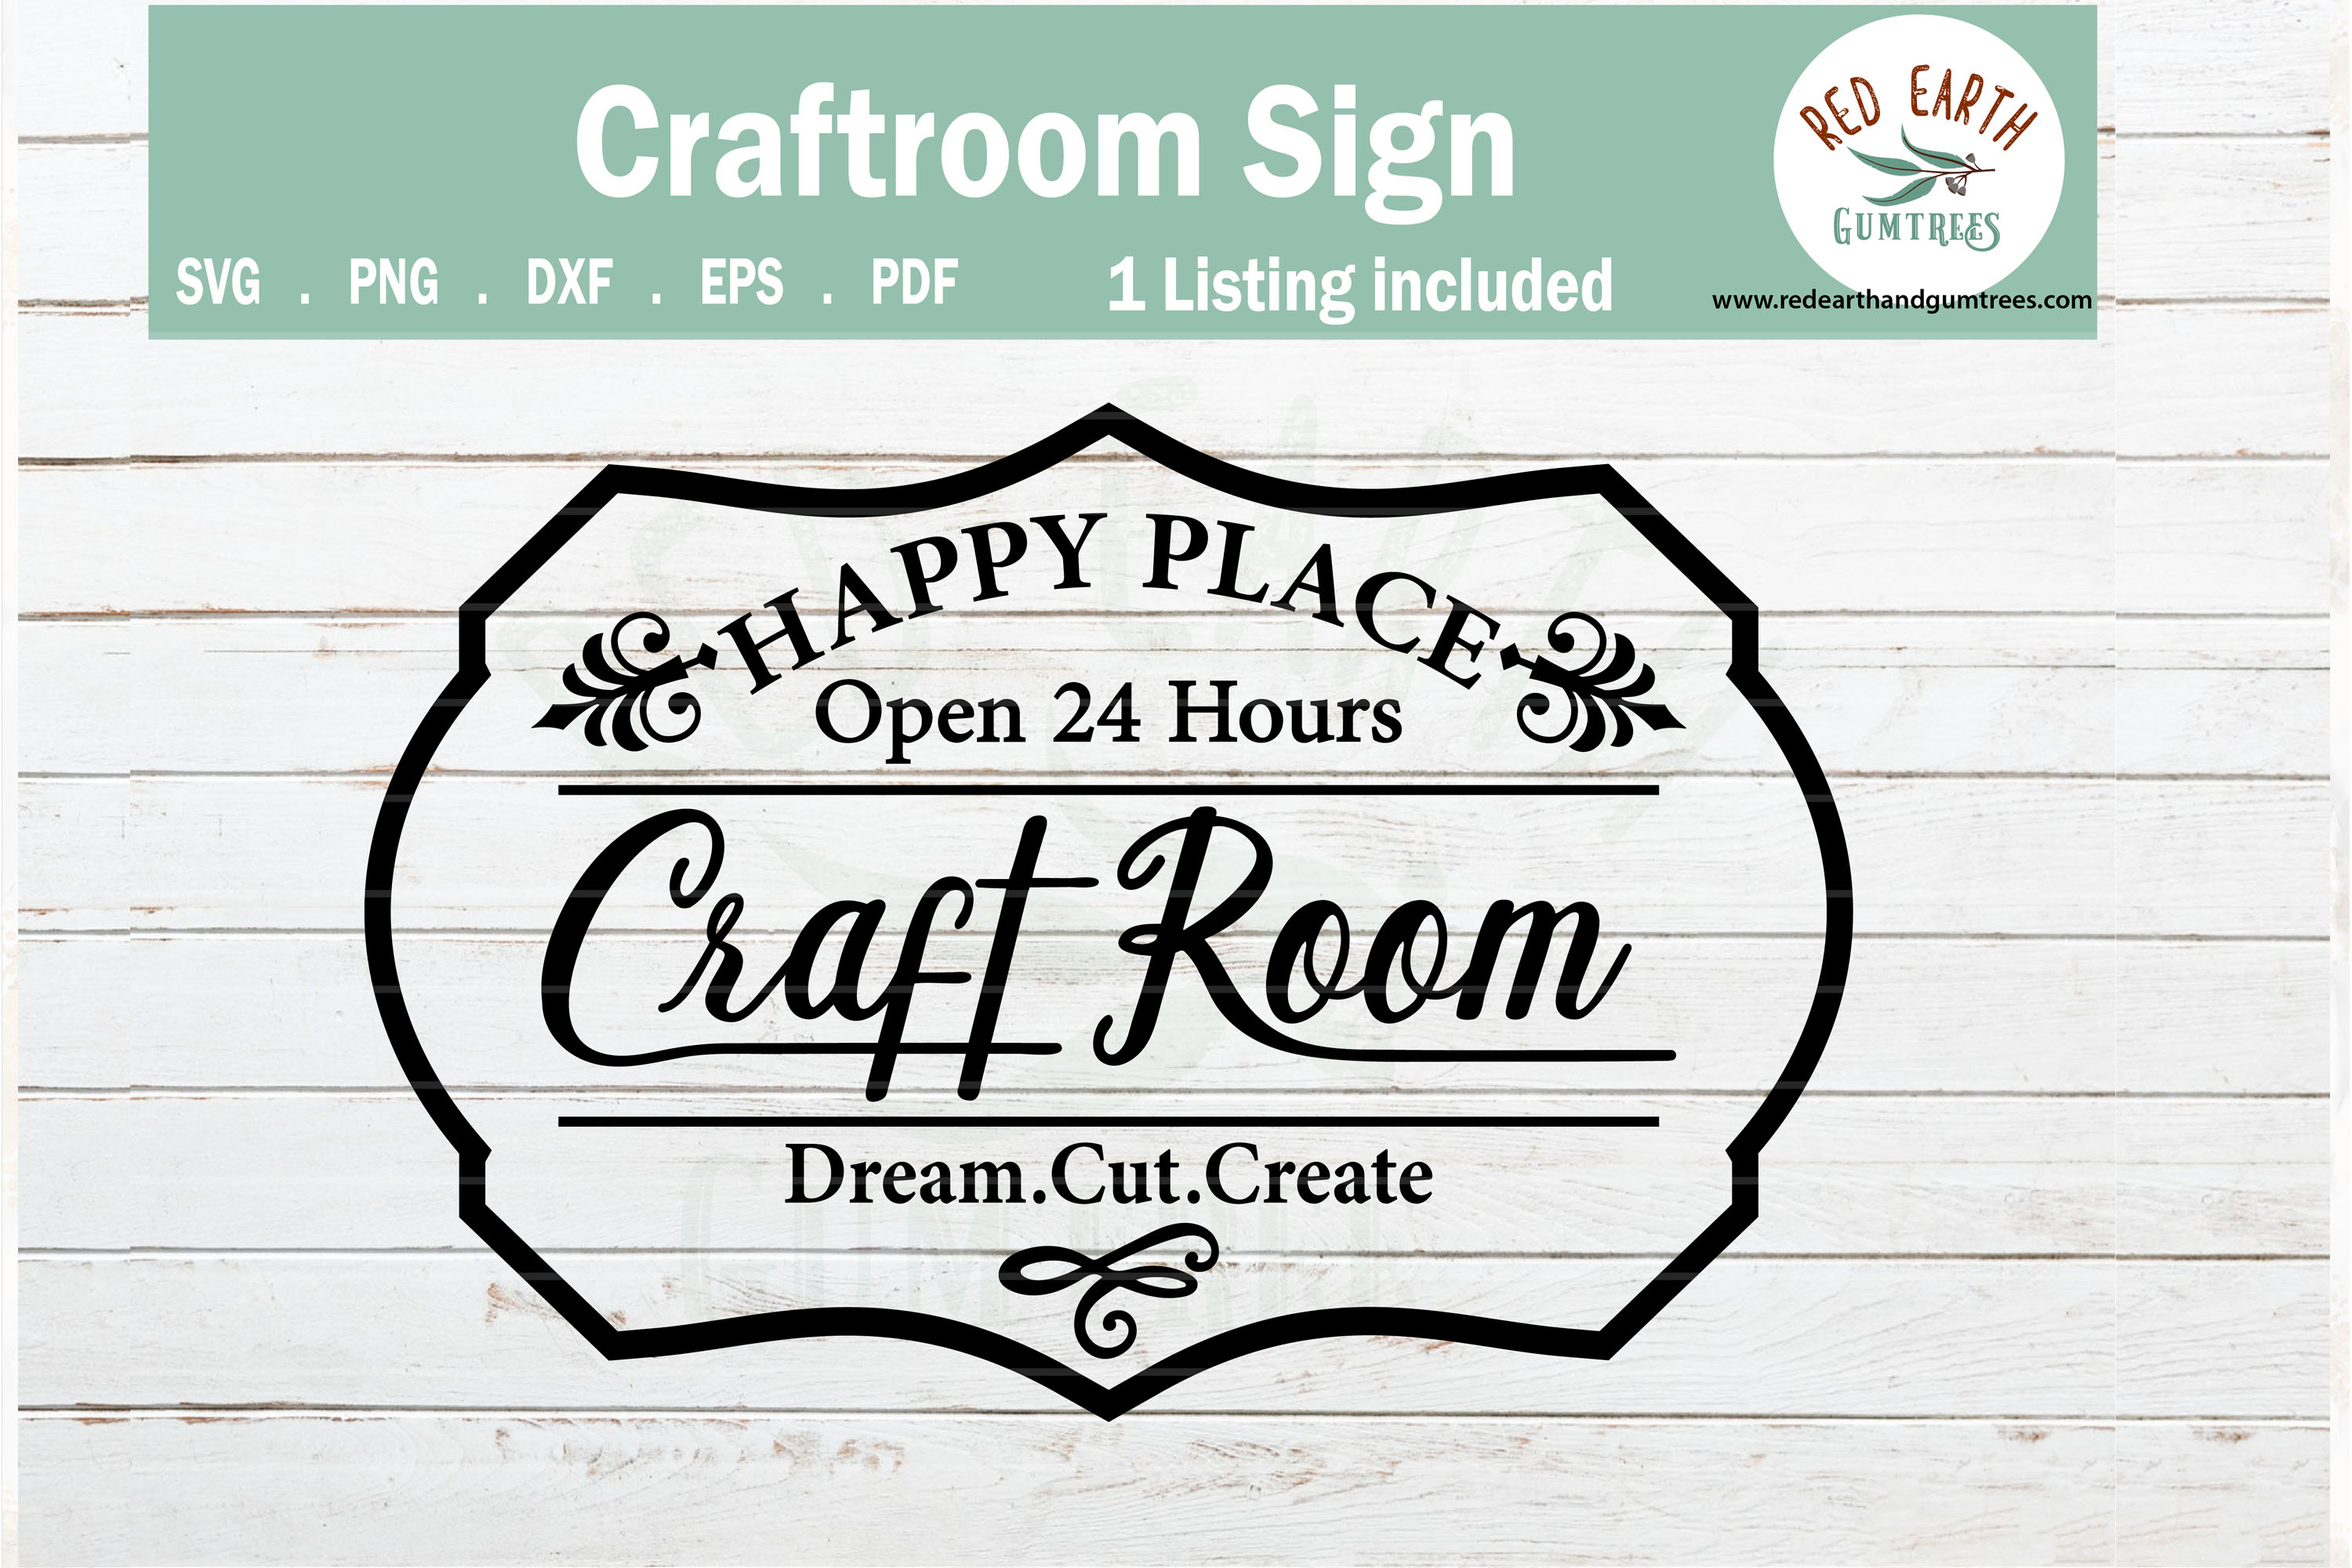 Download Free Craftroom Sign Making Decal Graphic By Redearth And Gumtrees for Cricut Explore, Silhouette and other cutting machines.